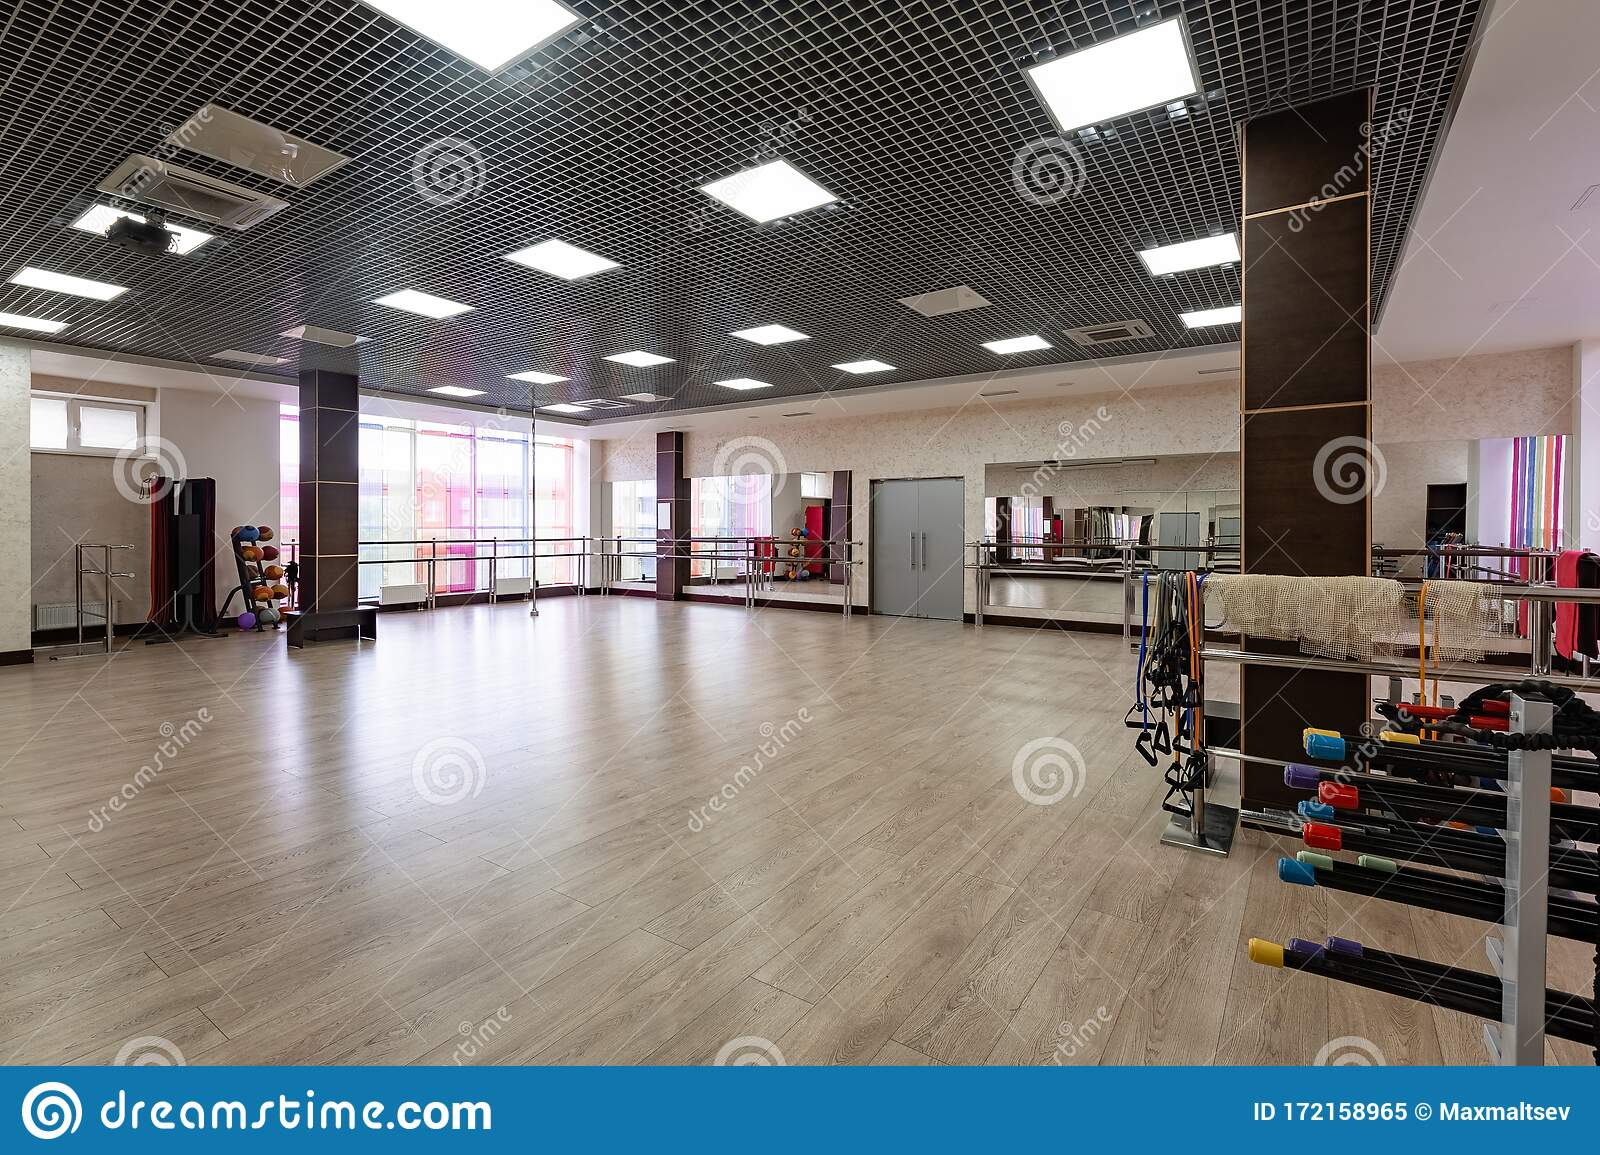 Group Fitness Room Modern Interior Design Fitness Workout Fitness Gym Background Gym Equipment Background Empty Stock Image Image Of Equipment Floor 172158965